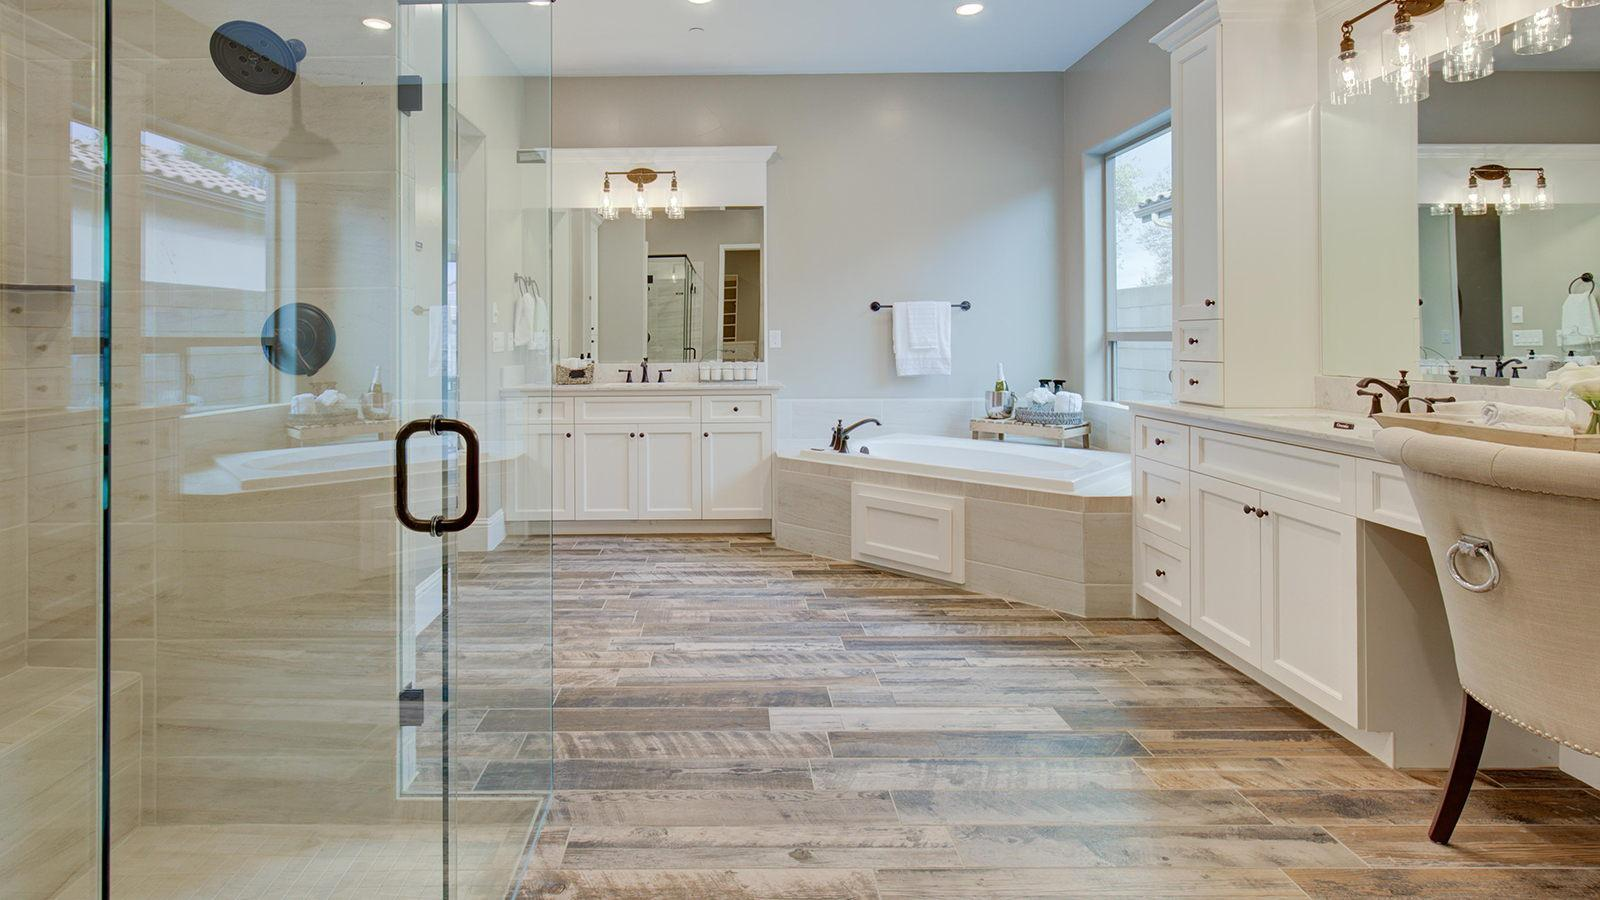 Bathroom featured in the Residence 5 By Granville Homes  in Fresno, CA